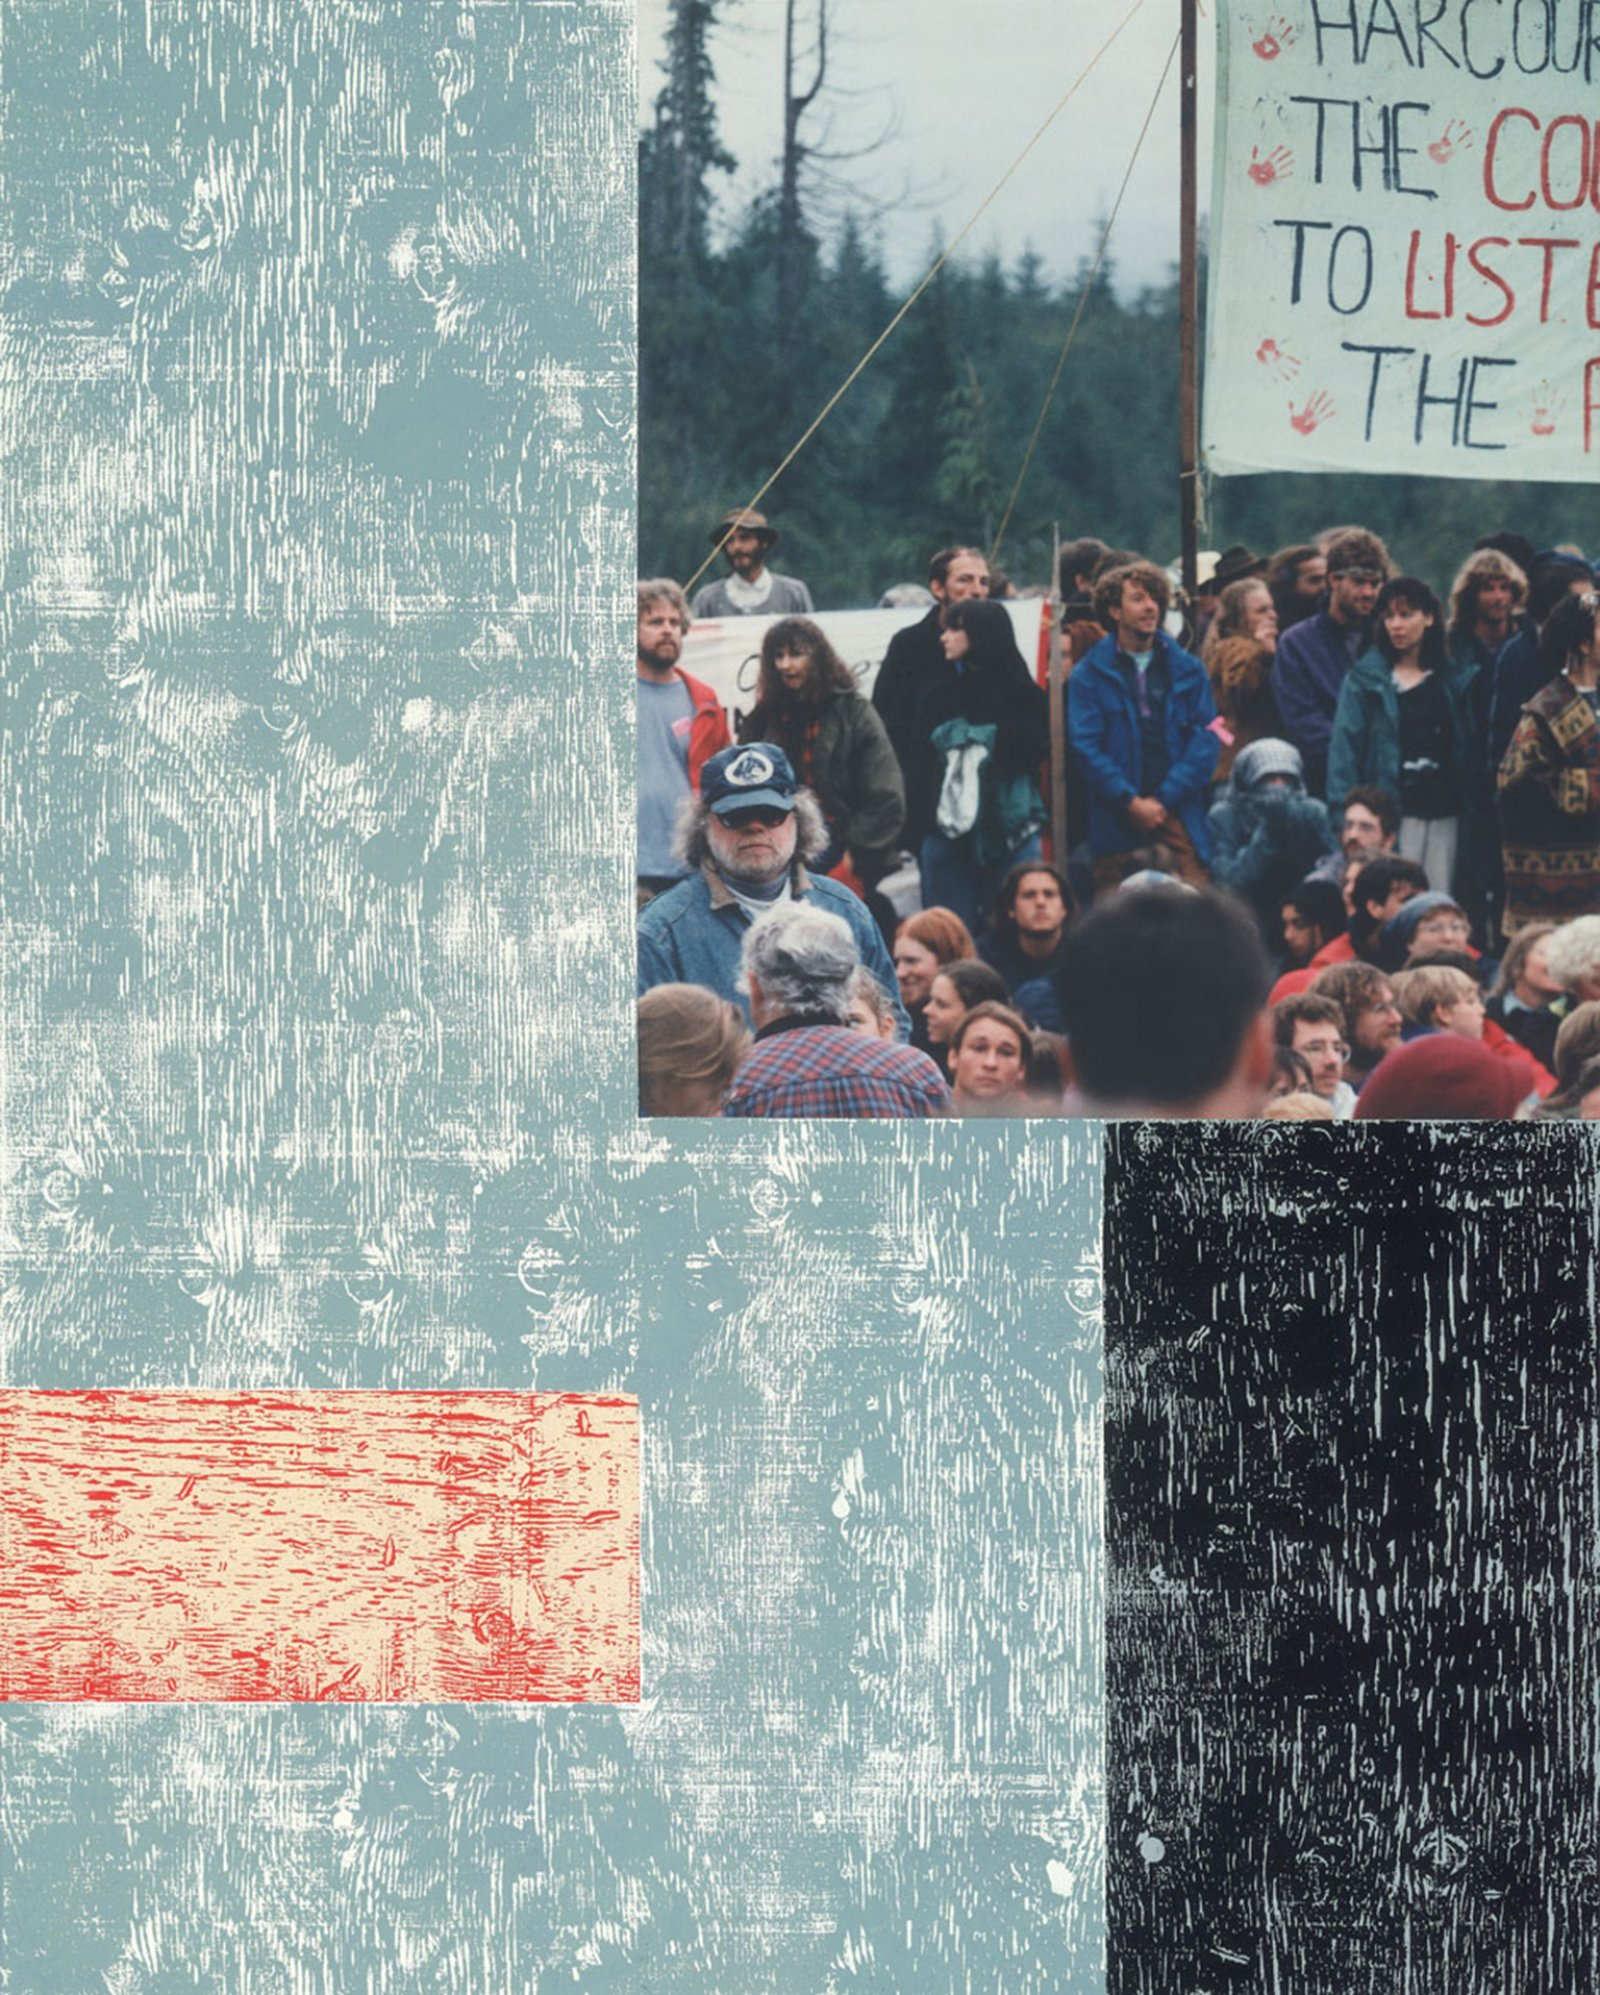 Ian Wallace, Clayoquot Protest (August 9, 1993) I, 1993–1995, photolaminate with acrylic on canvas, 120 x 72 x 1 in. (305 x 184 x 3 cm) by Ian Wallace